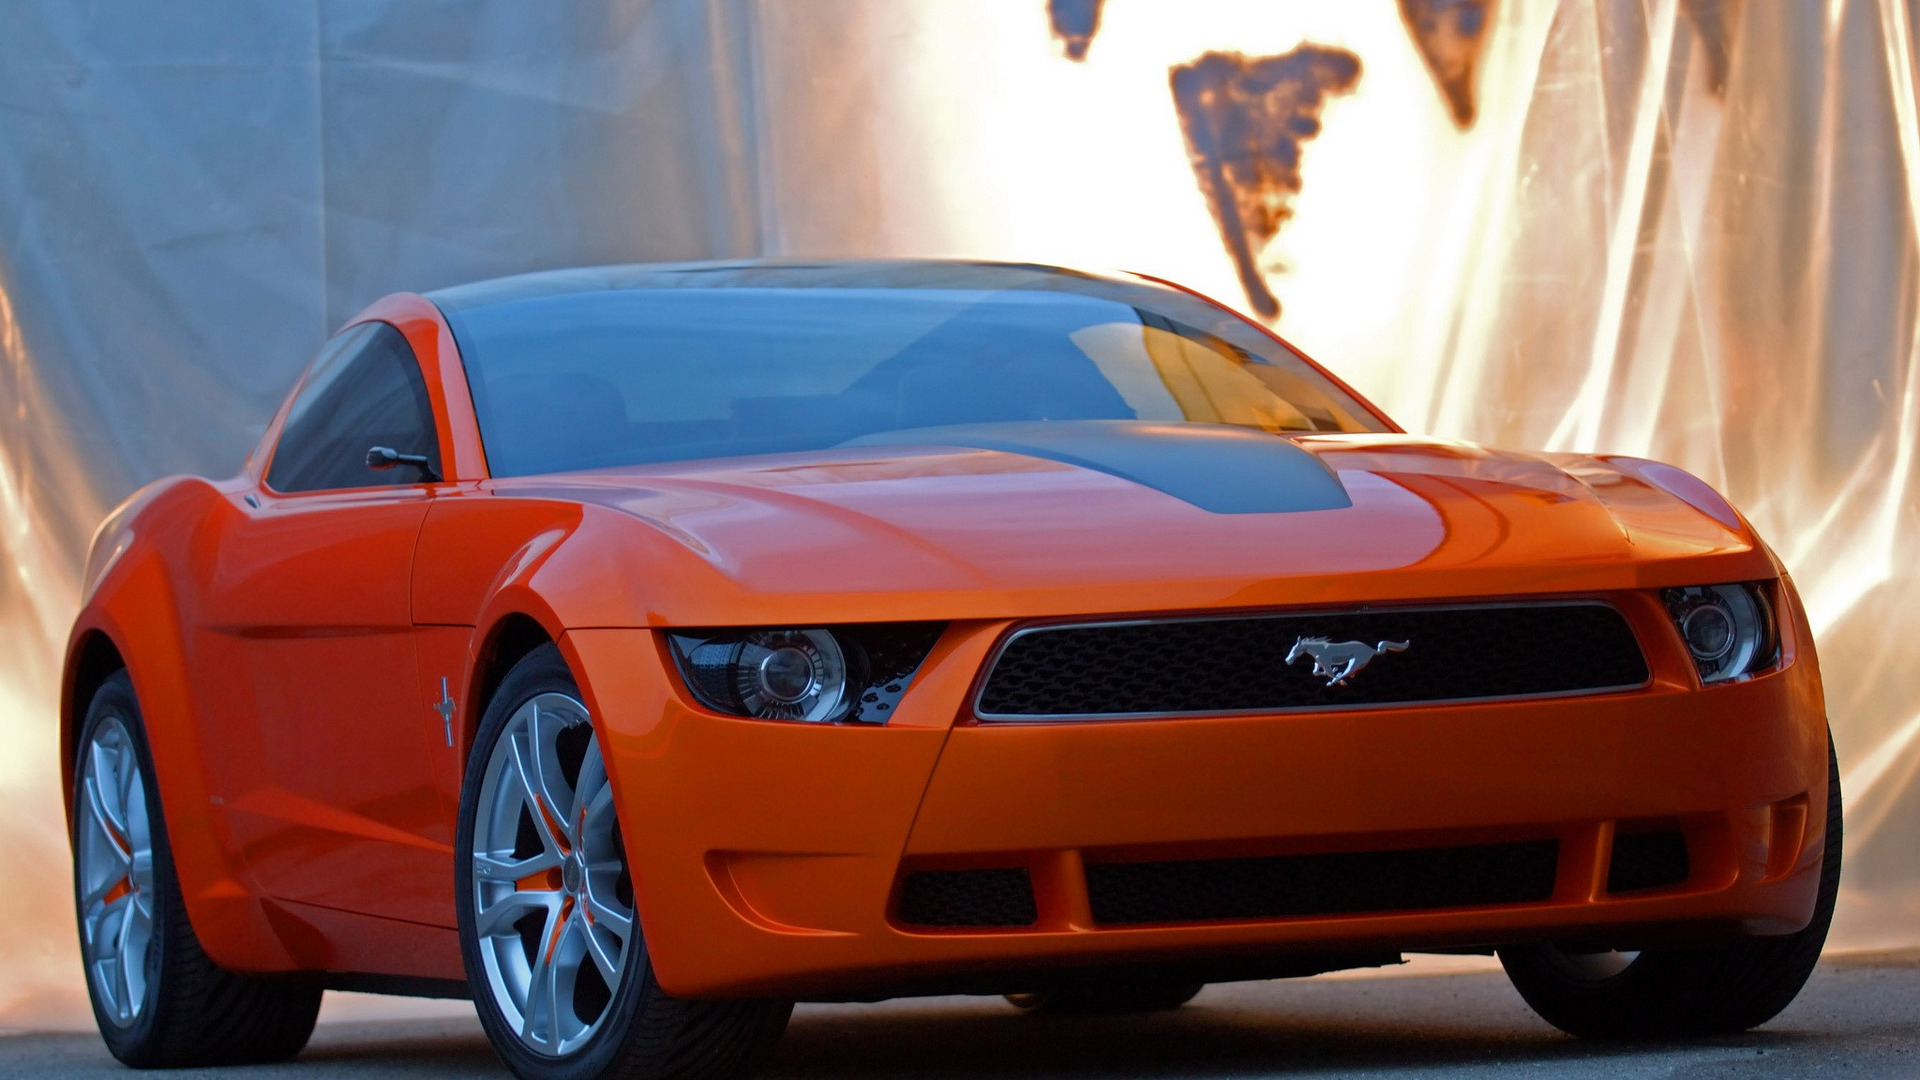 2006 ford mustang giugiaro concept we forgot